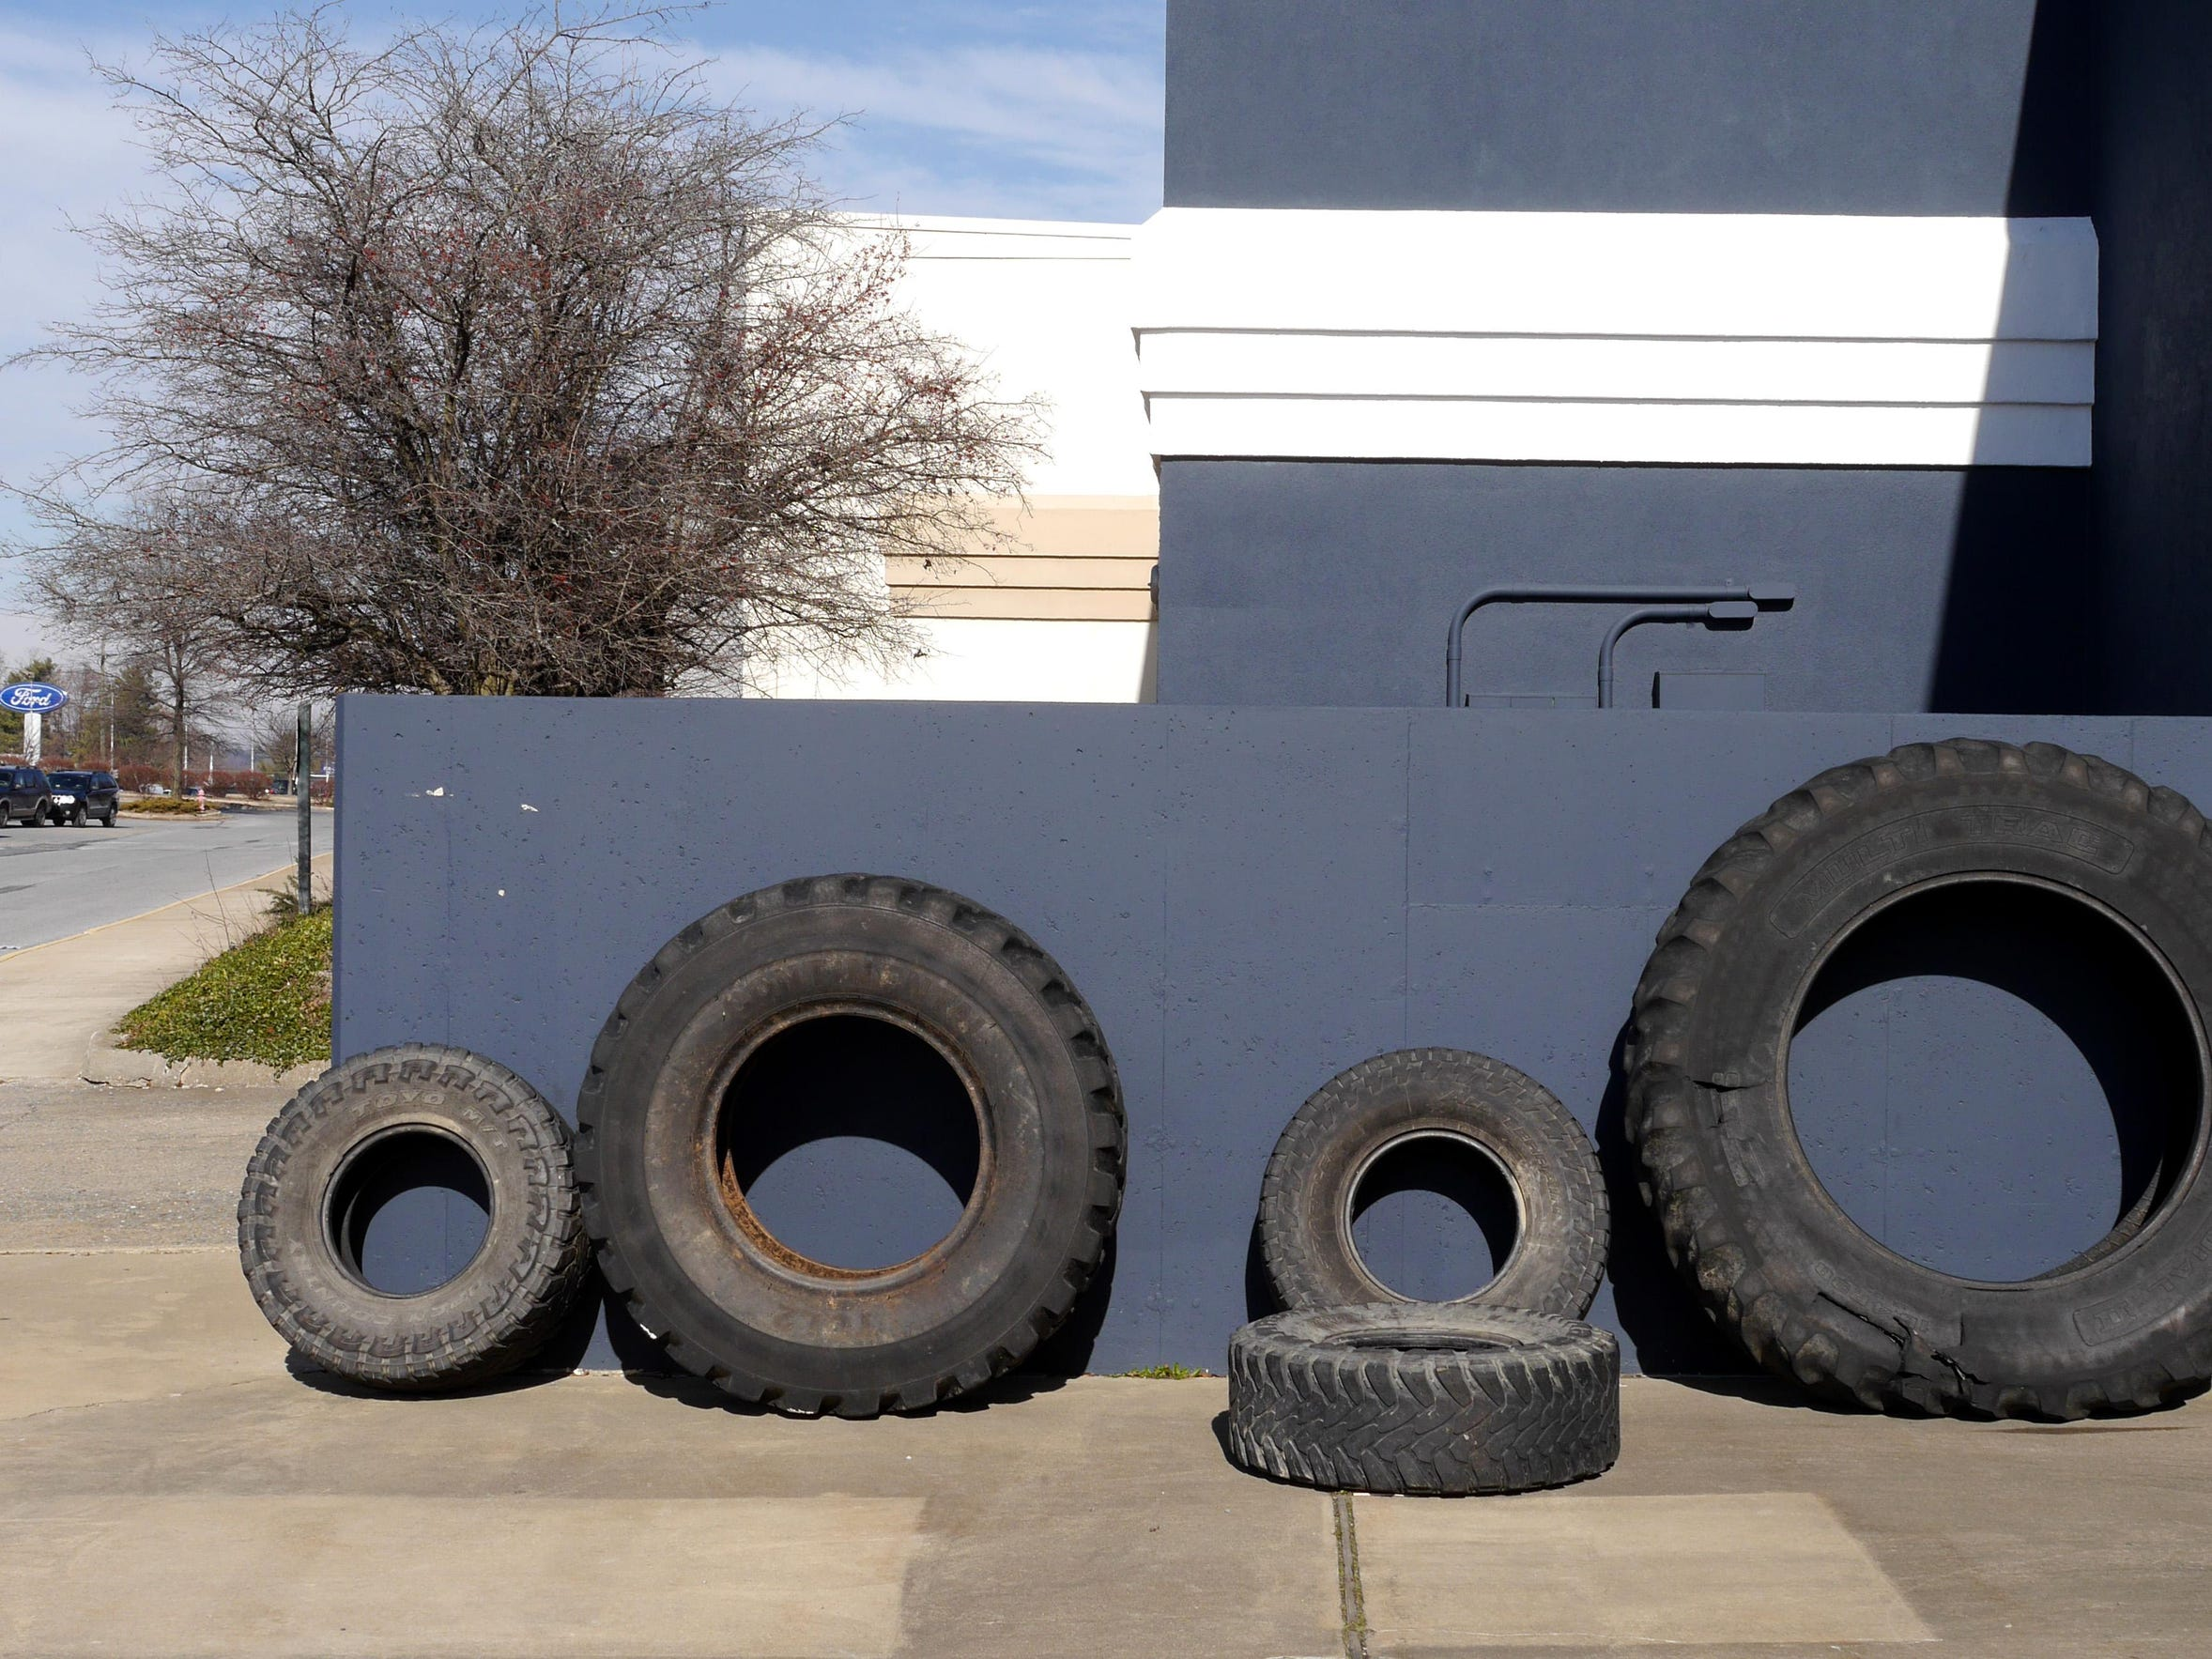 Wheels are turning: tires of different shapes and sizes